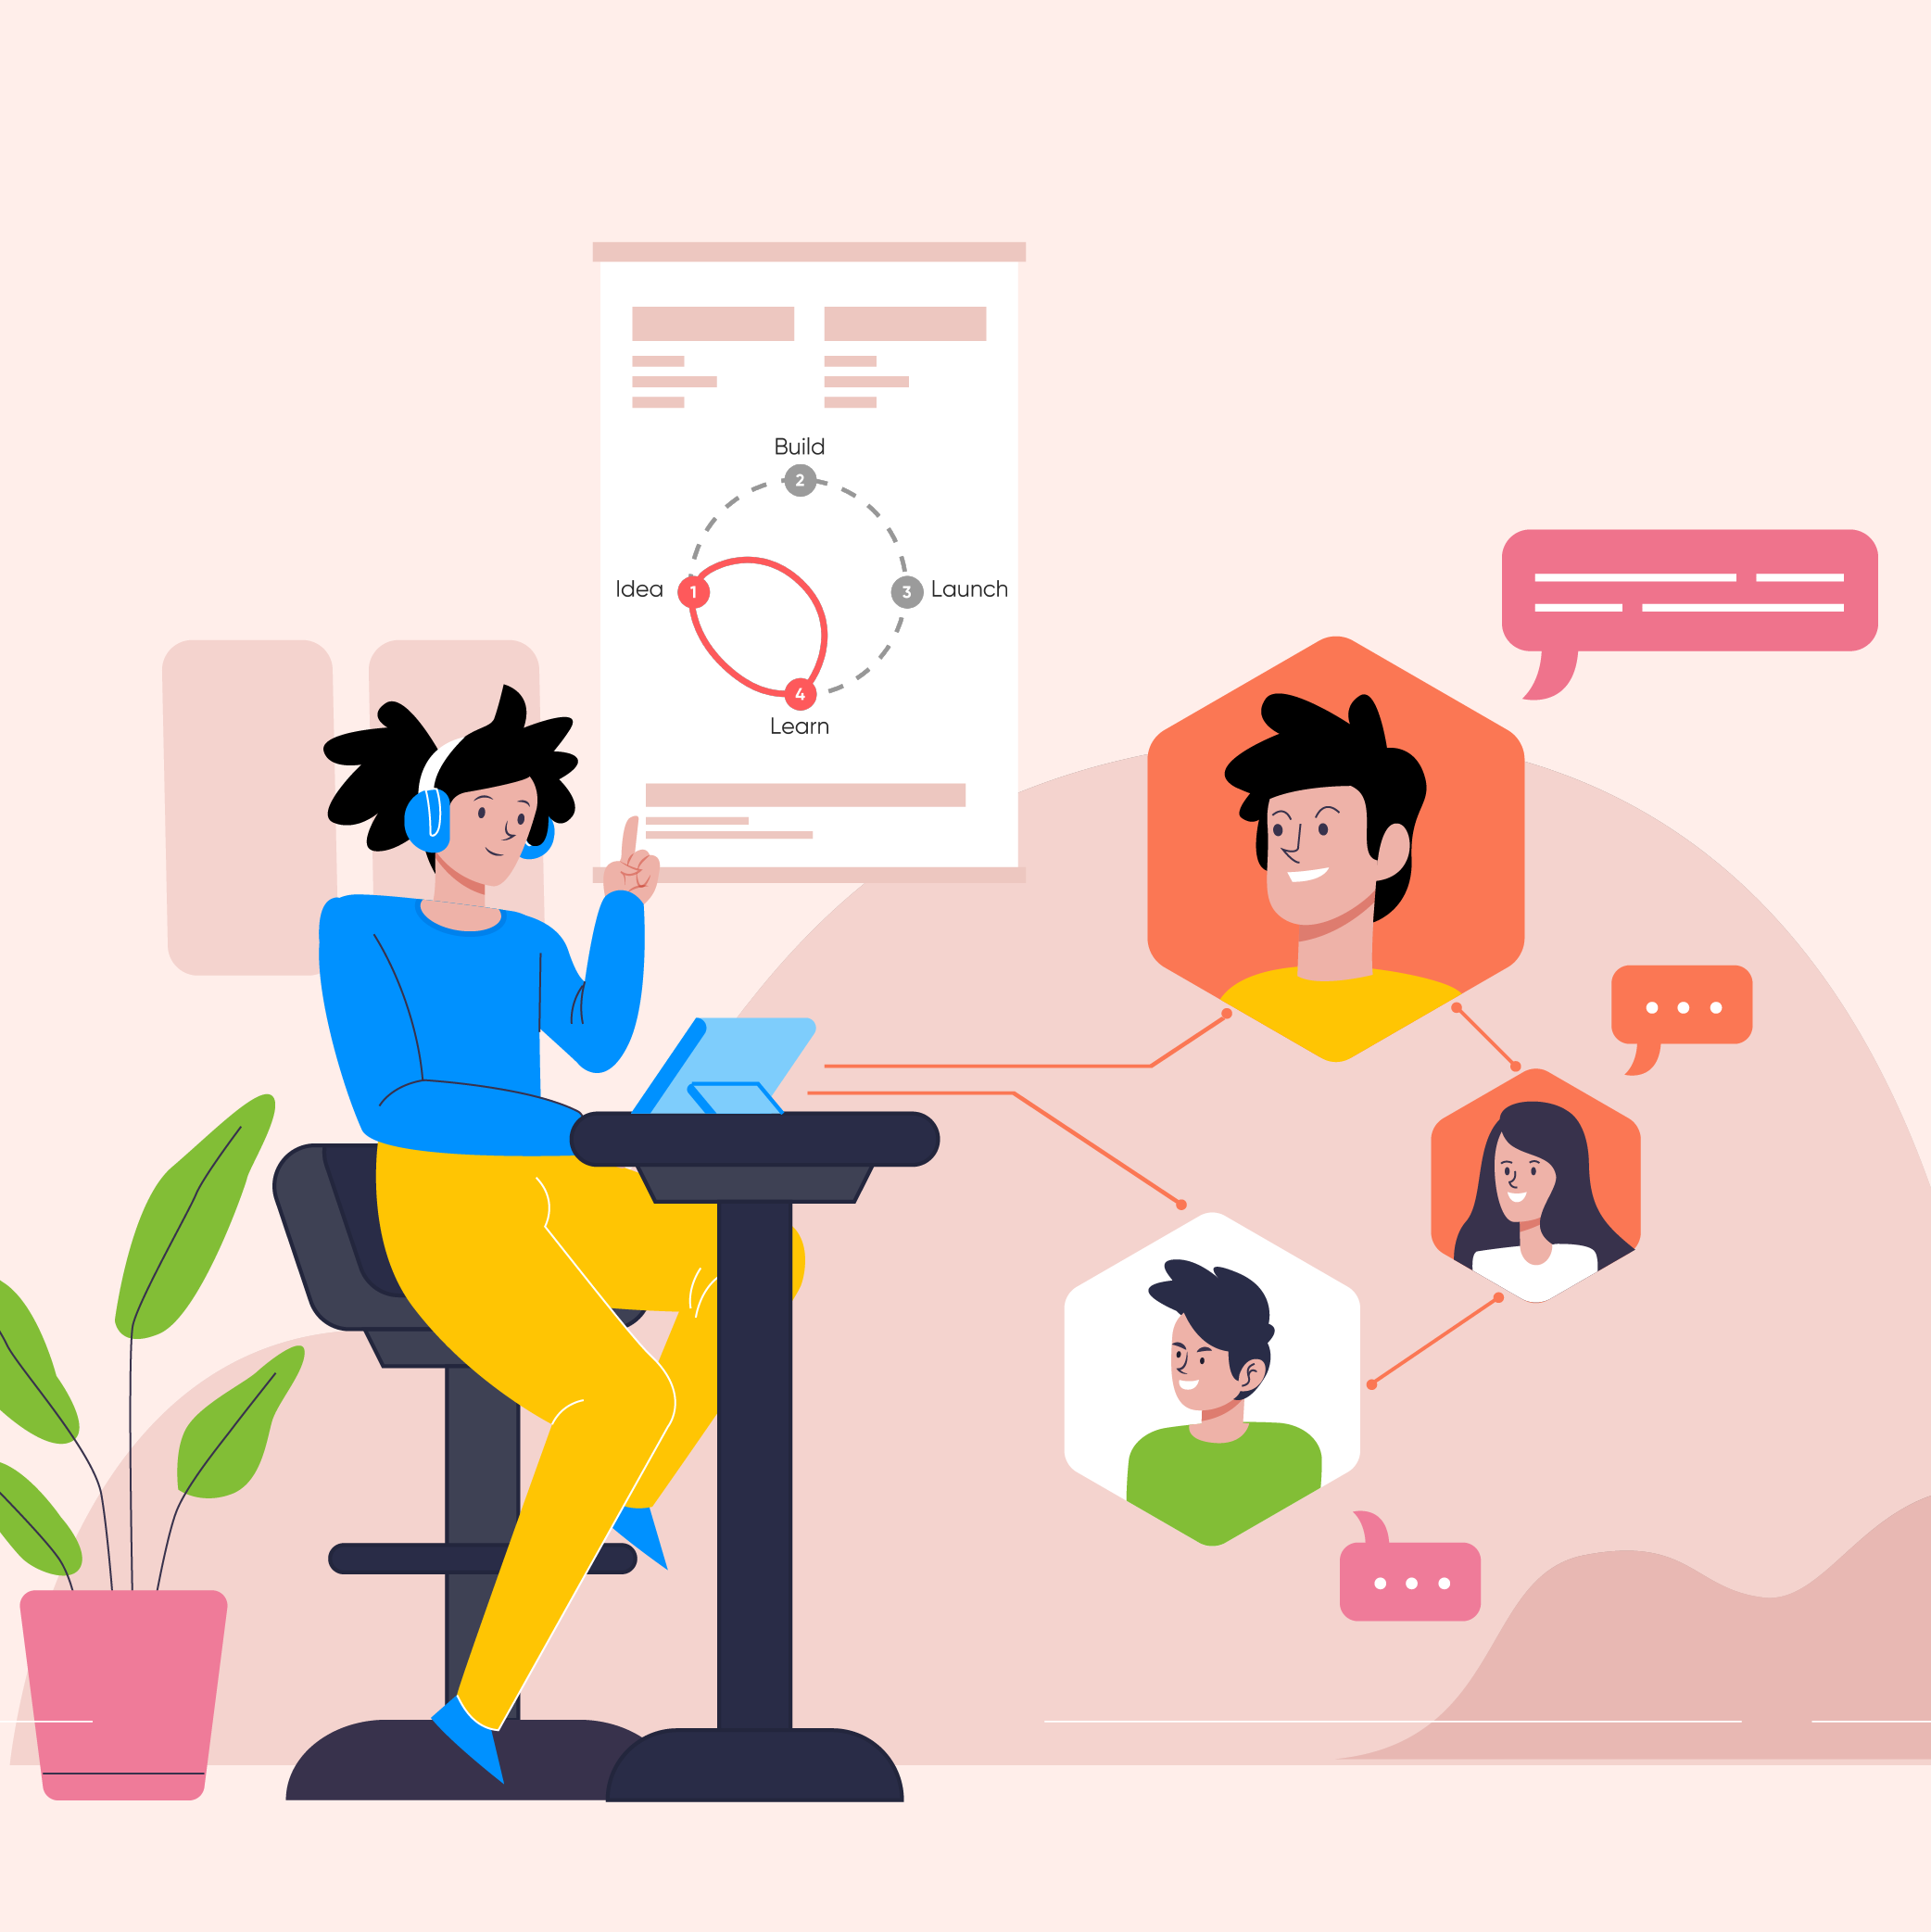 How to conduct Remote Design Sprint